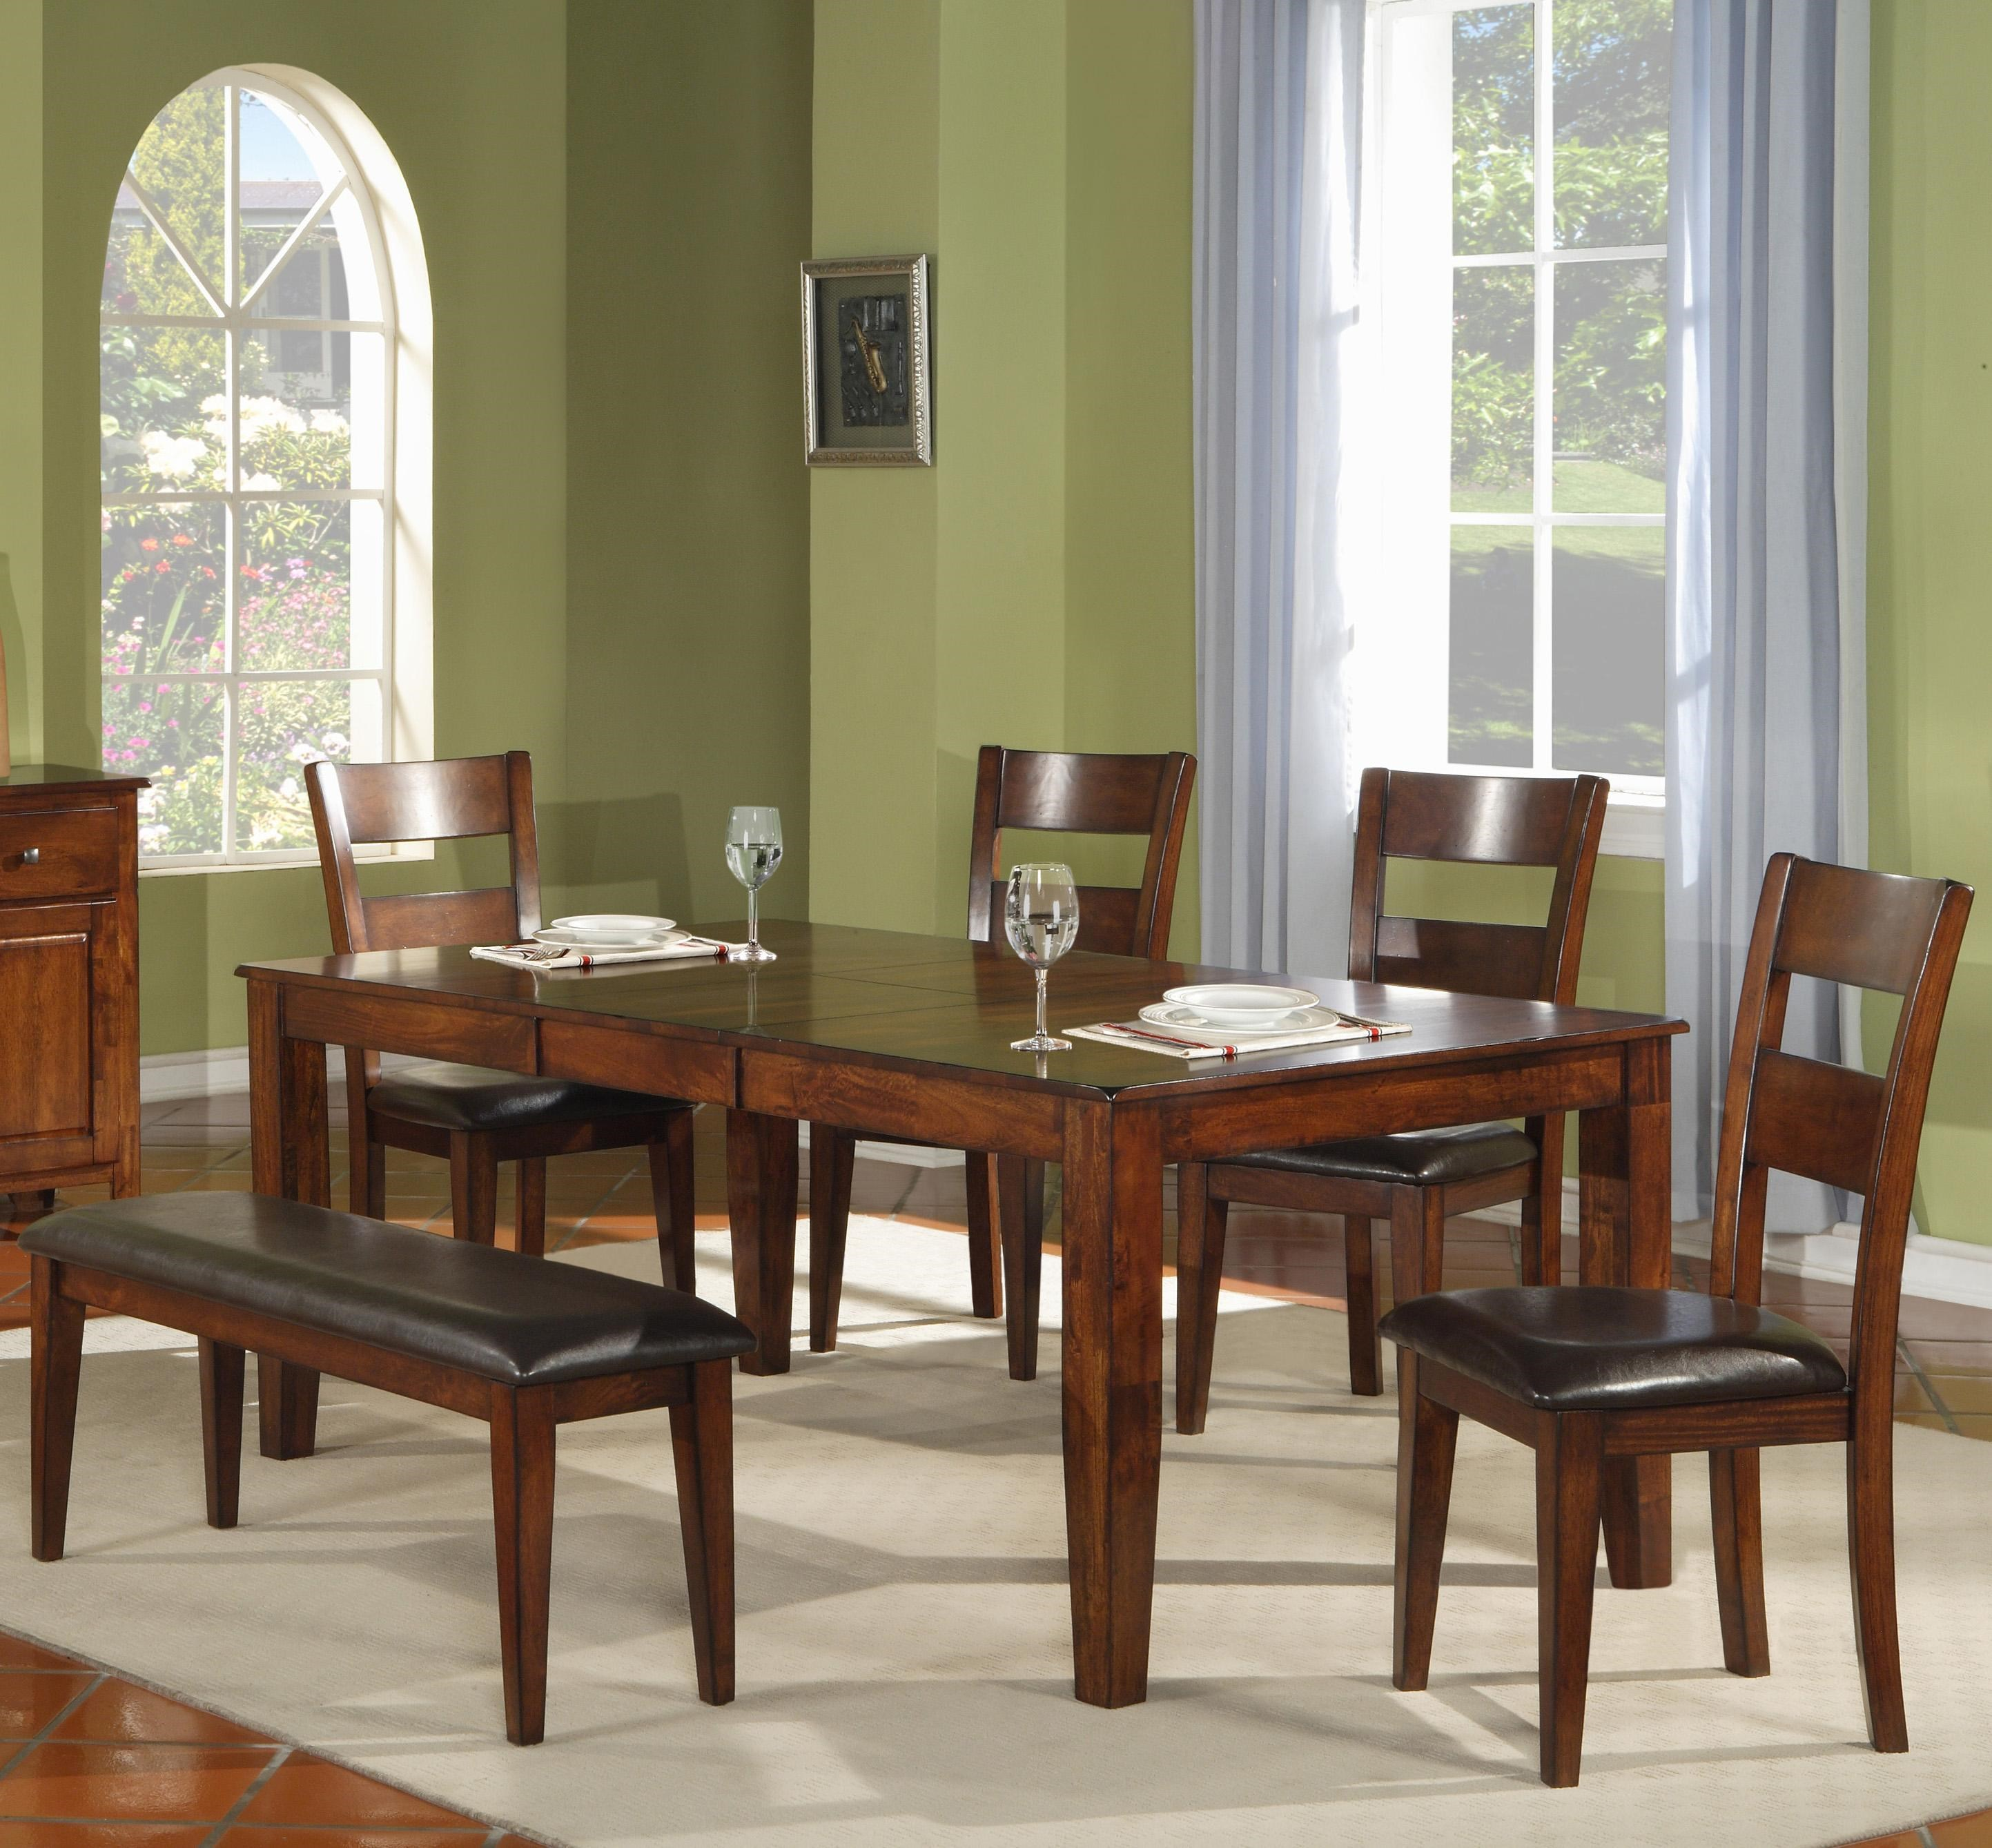 Holland House 1279 Mango Wood Leg Table with Side Chairs  : products2Fhollandhouse2Fcolor2F12791279 4278l2B4x1279 321s2B1279 322 ben bjpgscalebothampwidth500ampheight500ampfsharpen25ampdown from www.godbyhomefurnishings.com size 500 x 500 jpeg 54kB